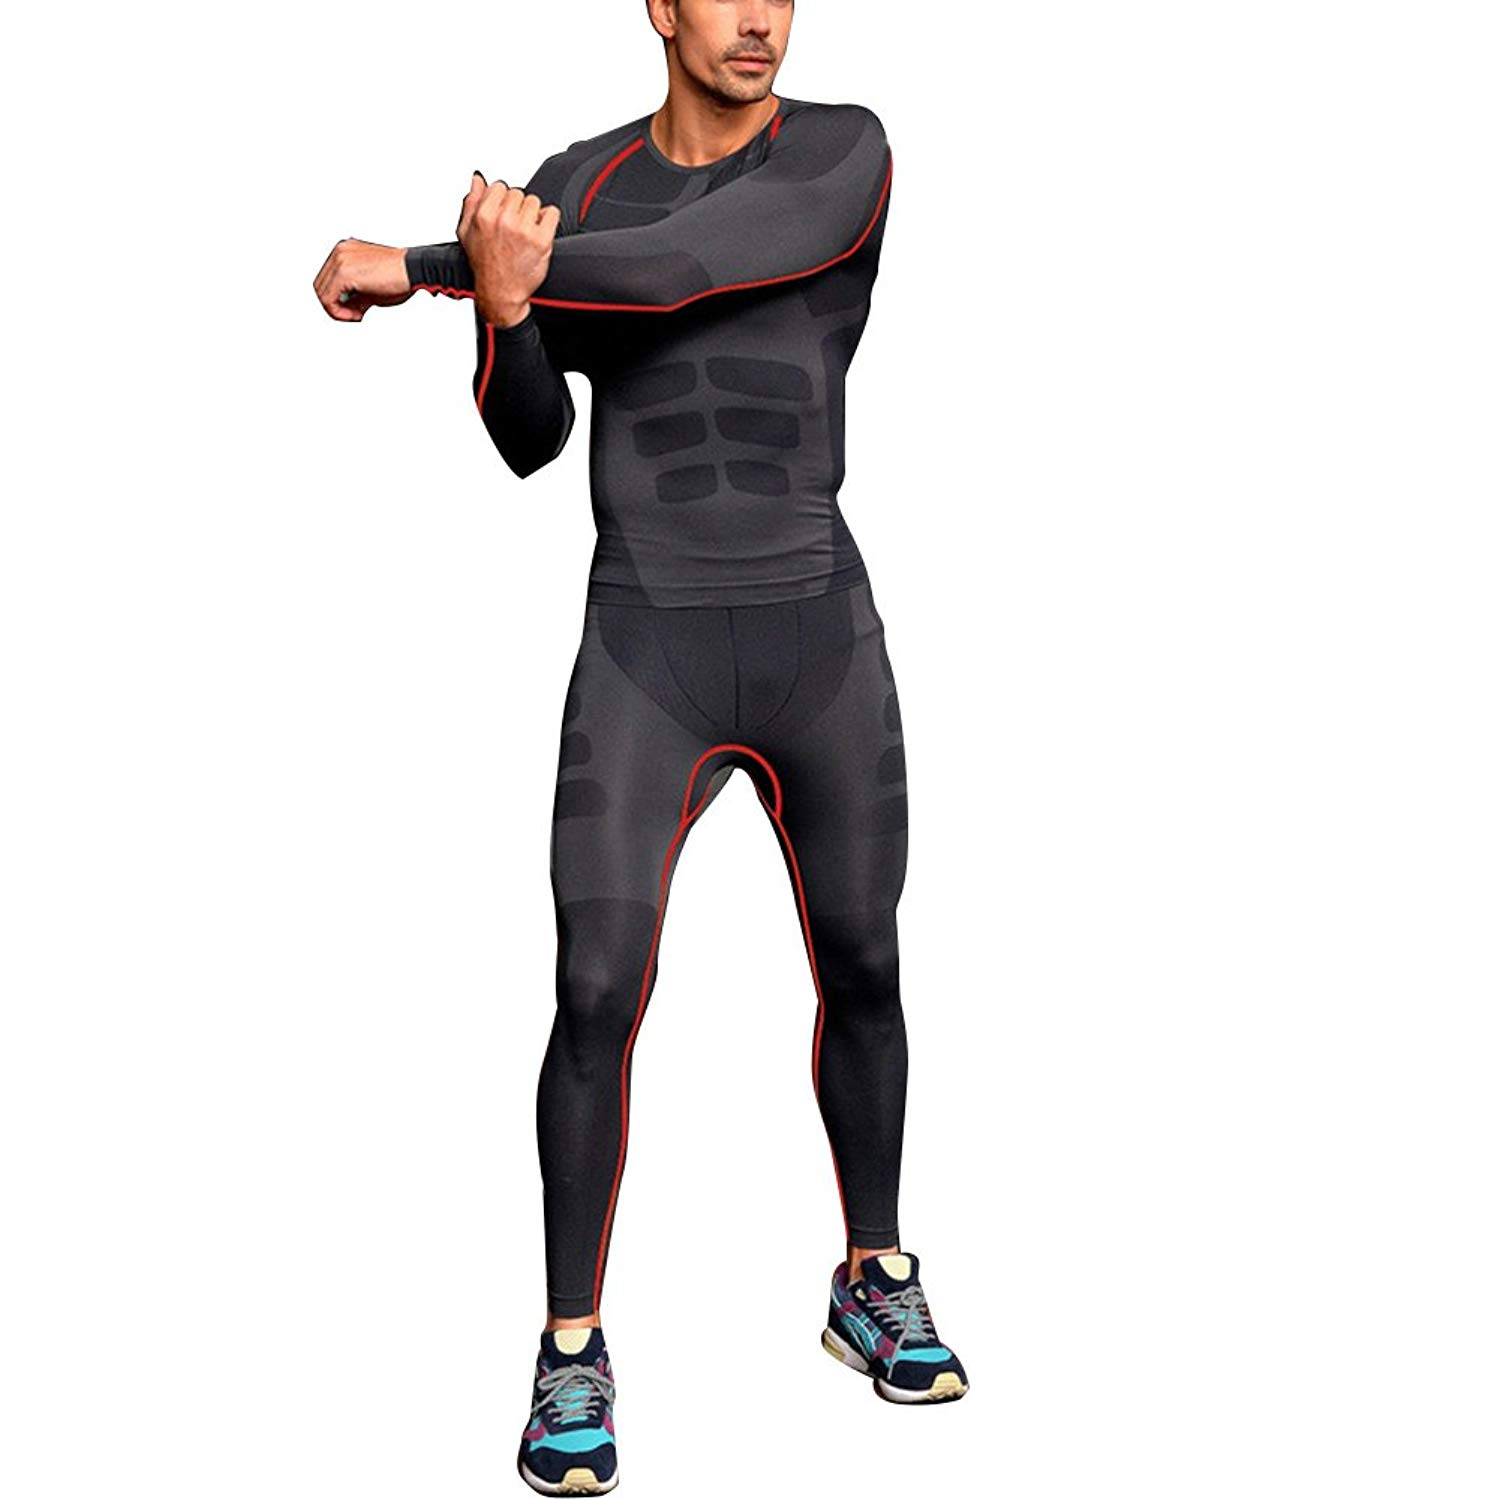 7f6d9f0495 Get Quotations · ROPALIA Men Compression Pants Base Layer Tight Gear Skin  Tight Sport Wear Pants